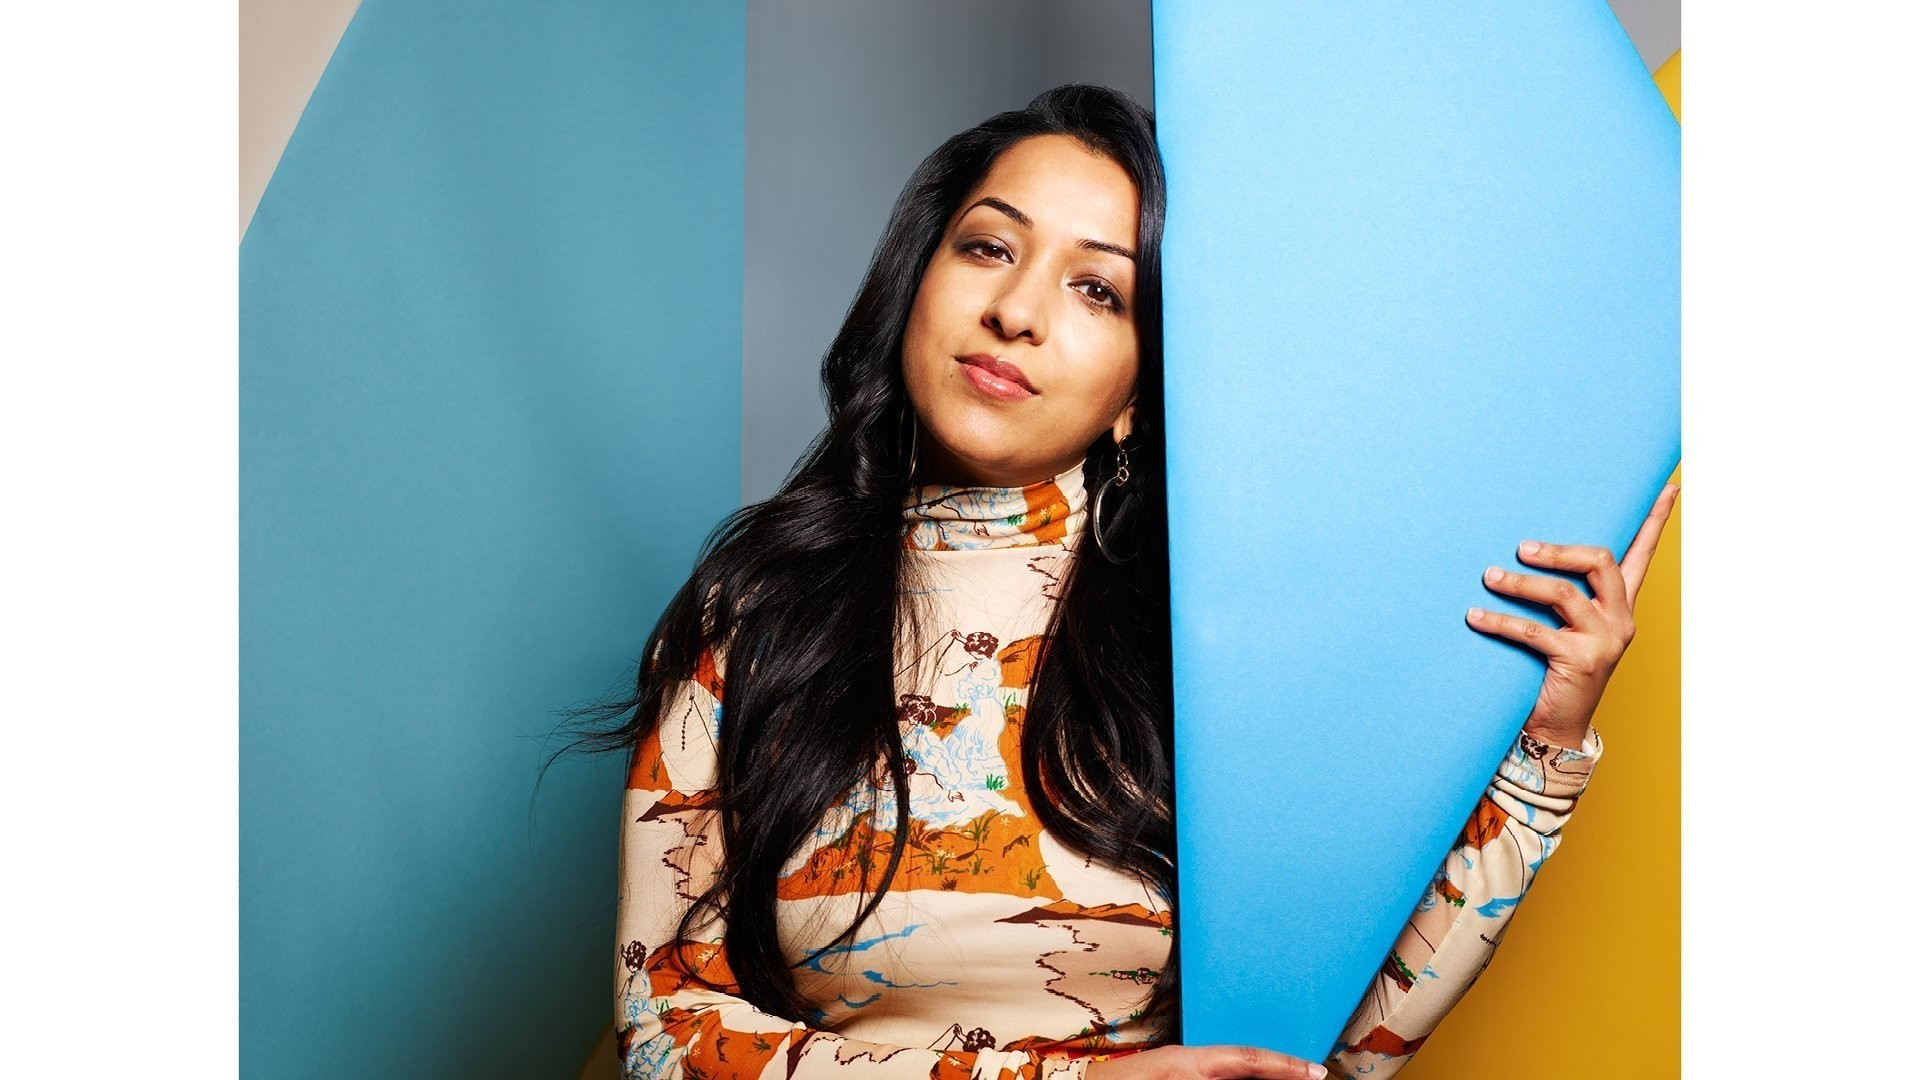 Sana Amanat Marvel Comics Interview Vogue American Women - Vogue